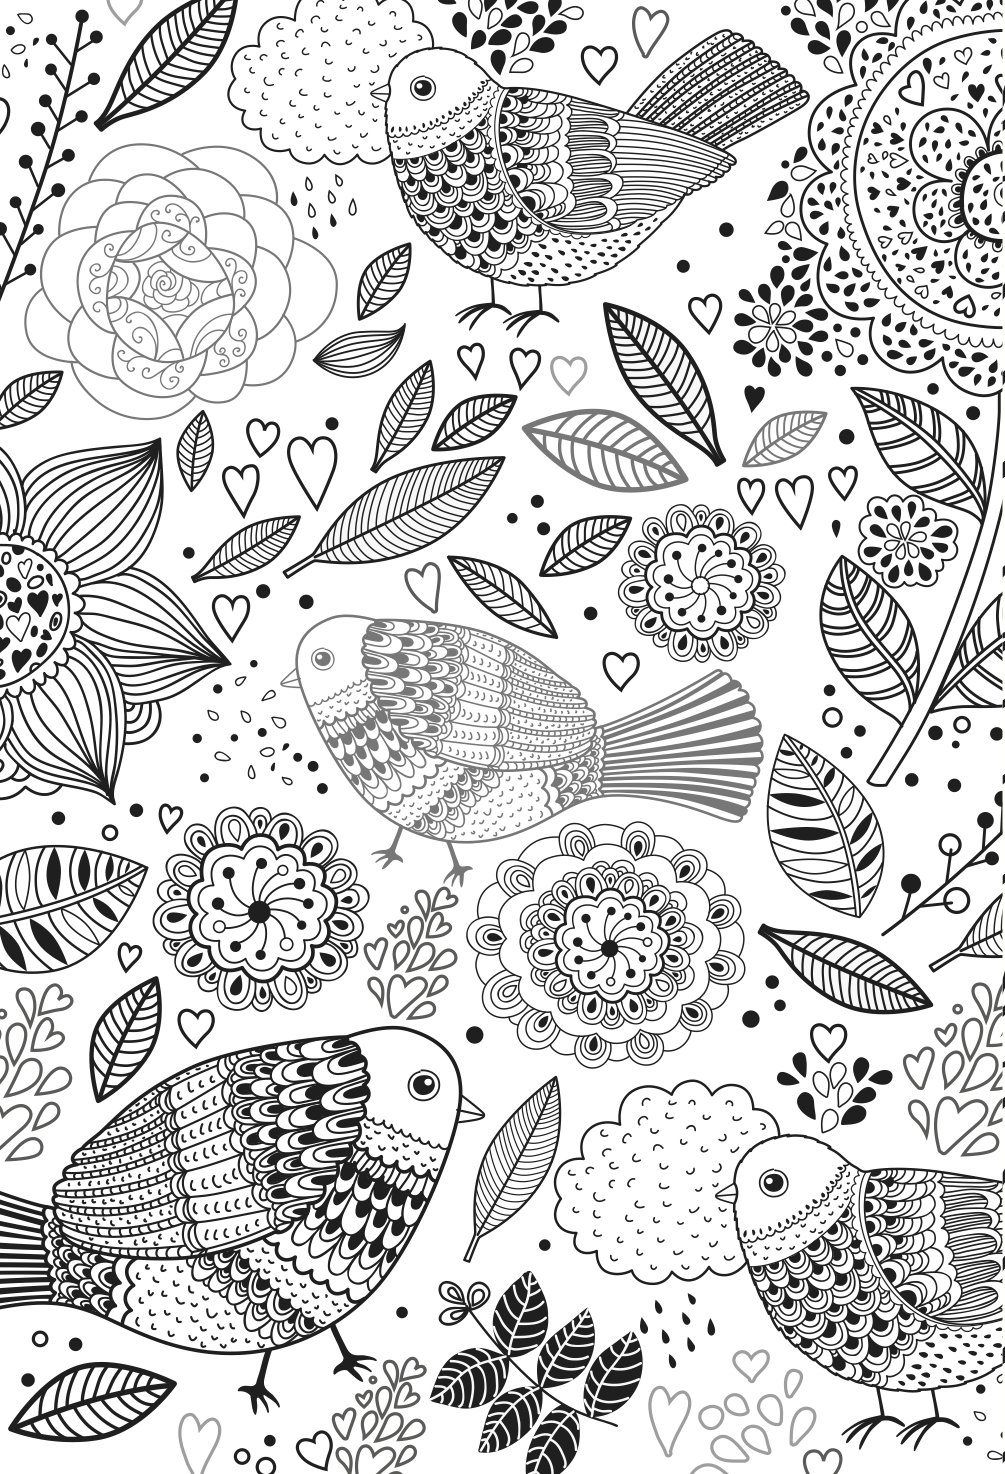 Colouring Books for Adults | El mandala, Páginas para colorear y ...